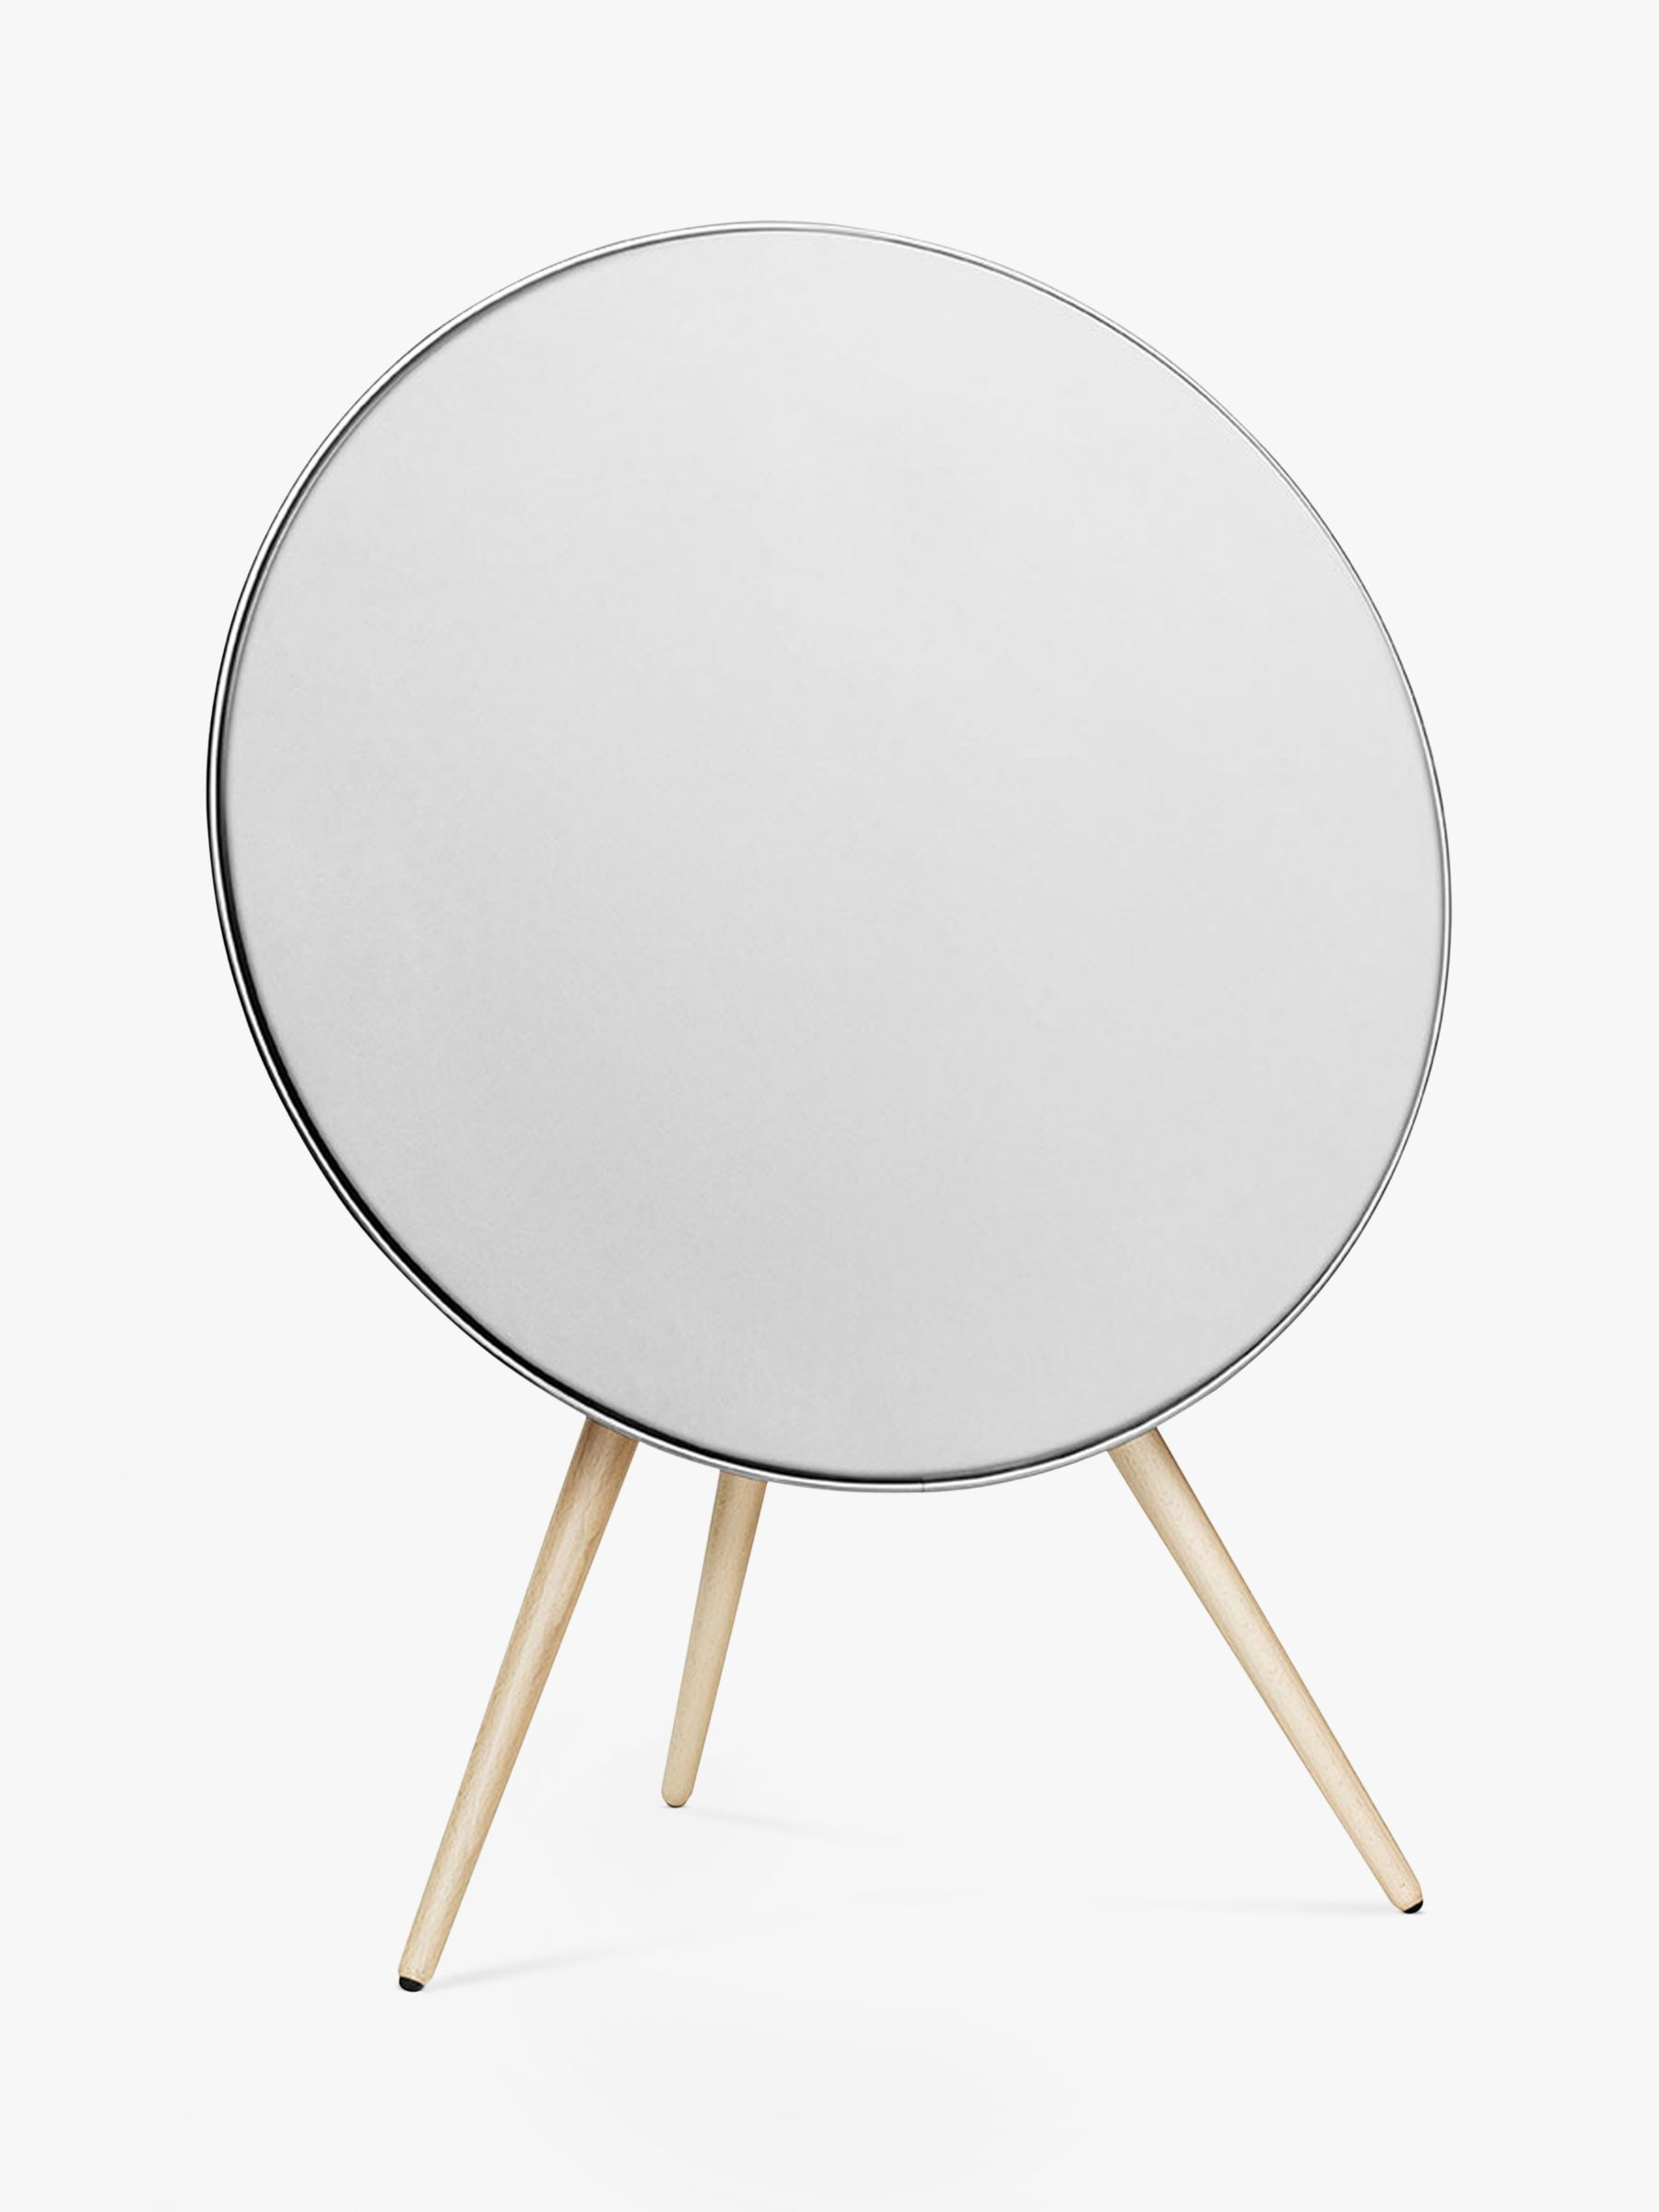 Bang & Olufsen B&O PLAY by Bang & Olufsen Beoplay A9 Bluetooth, AirPlay, Google Cast & DLNA Music System